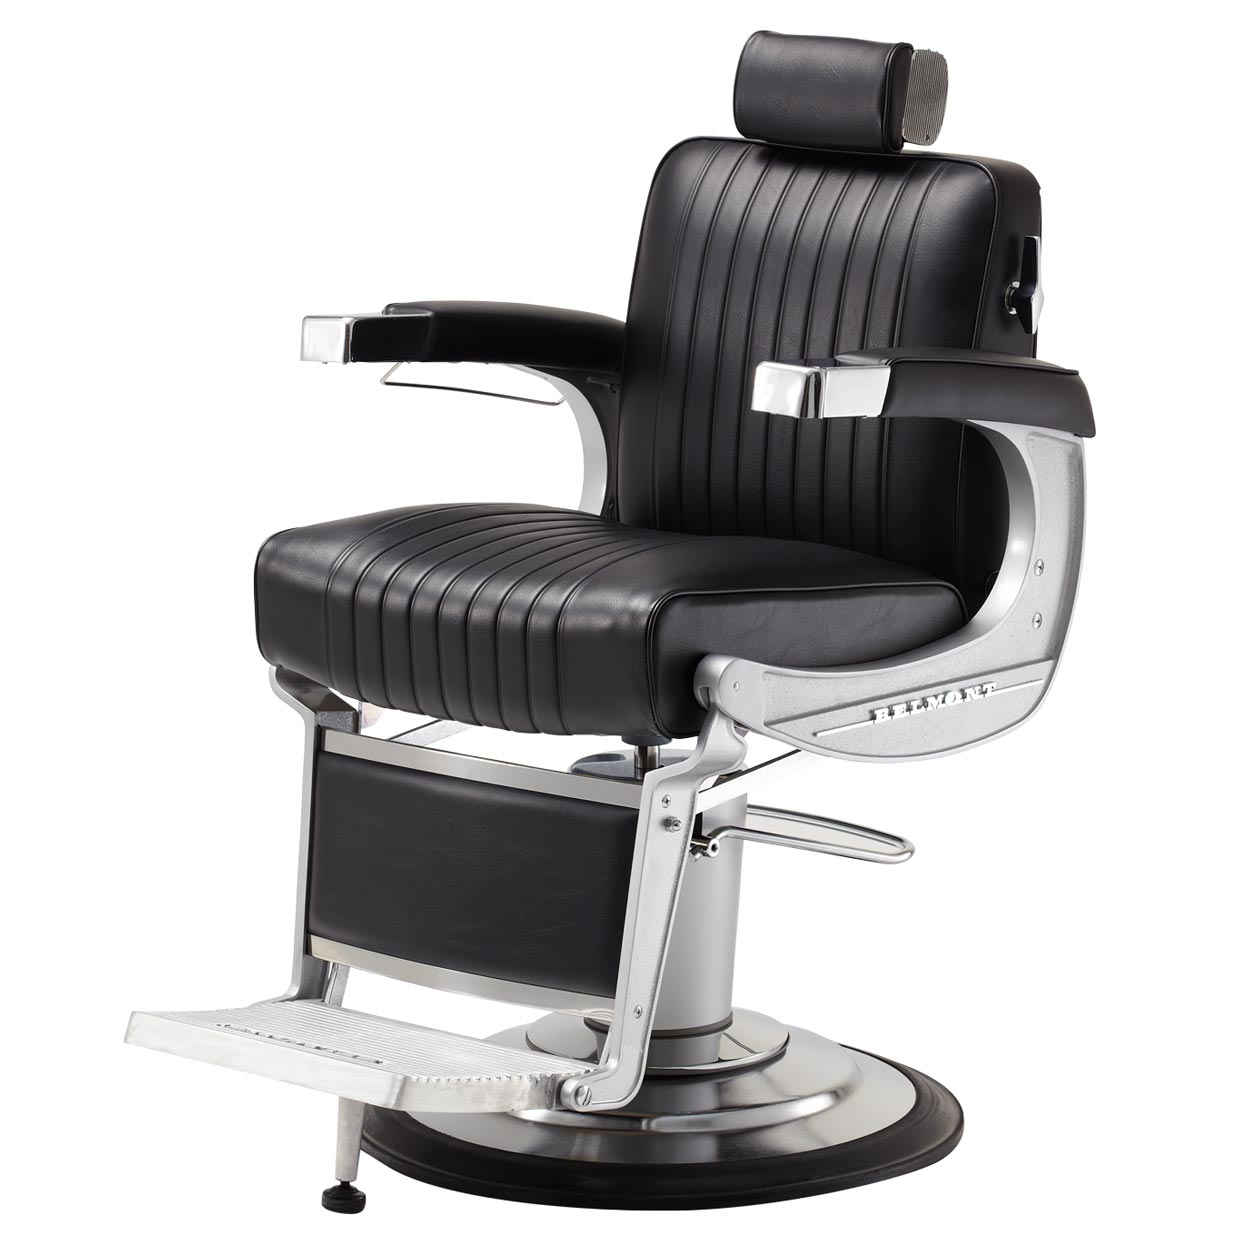 Takara Belmont Elegance Barber Chair with Recliner  main product image